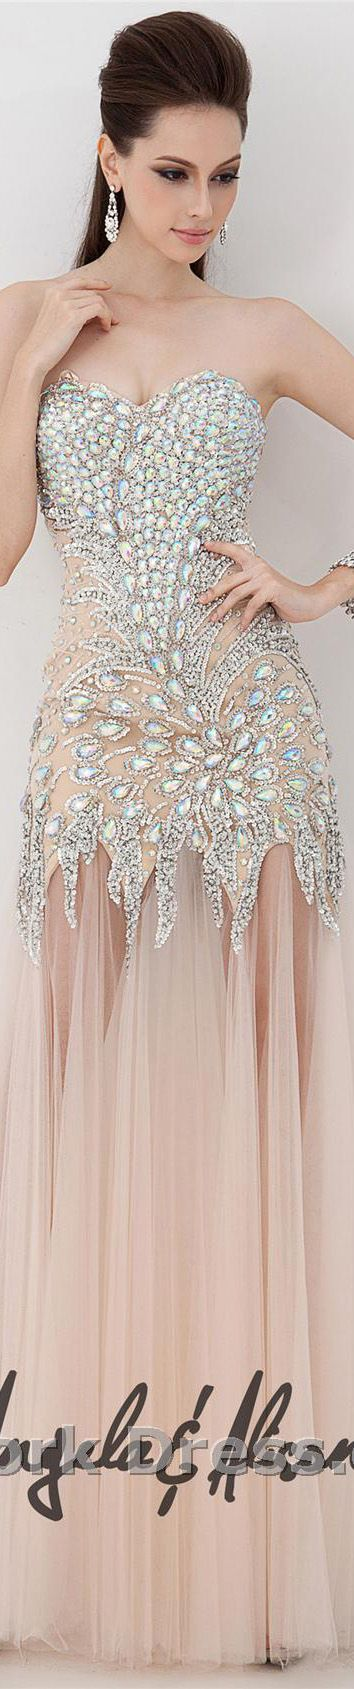 Angela and Alison design #formal #large #strapless #bejeweled #sexy #dress ♥